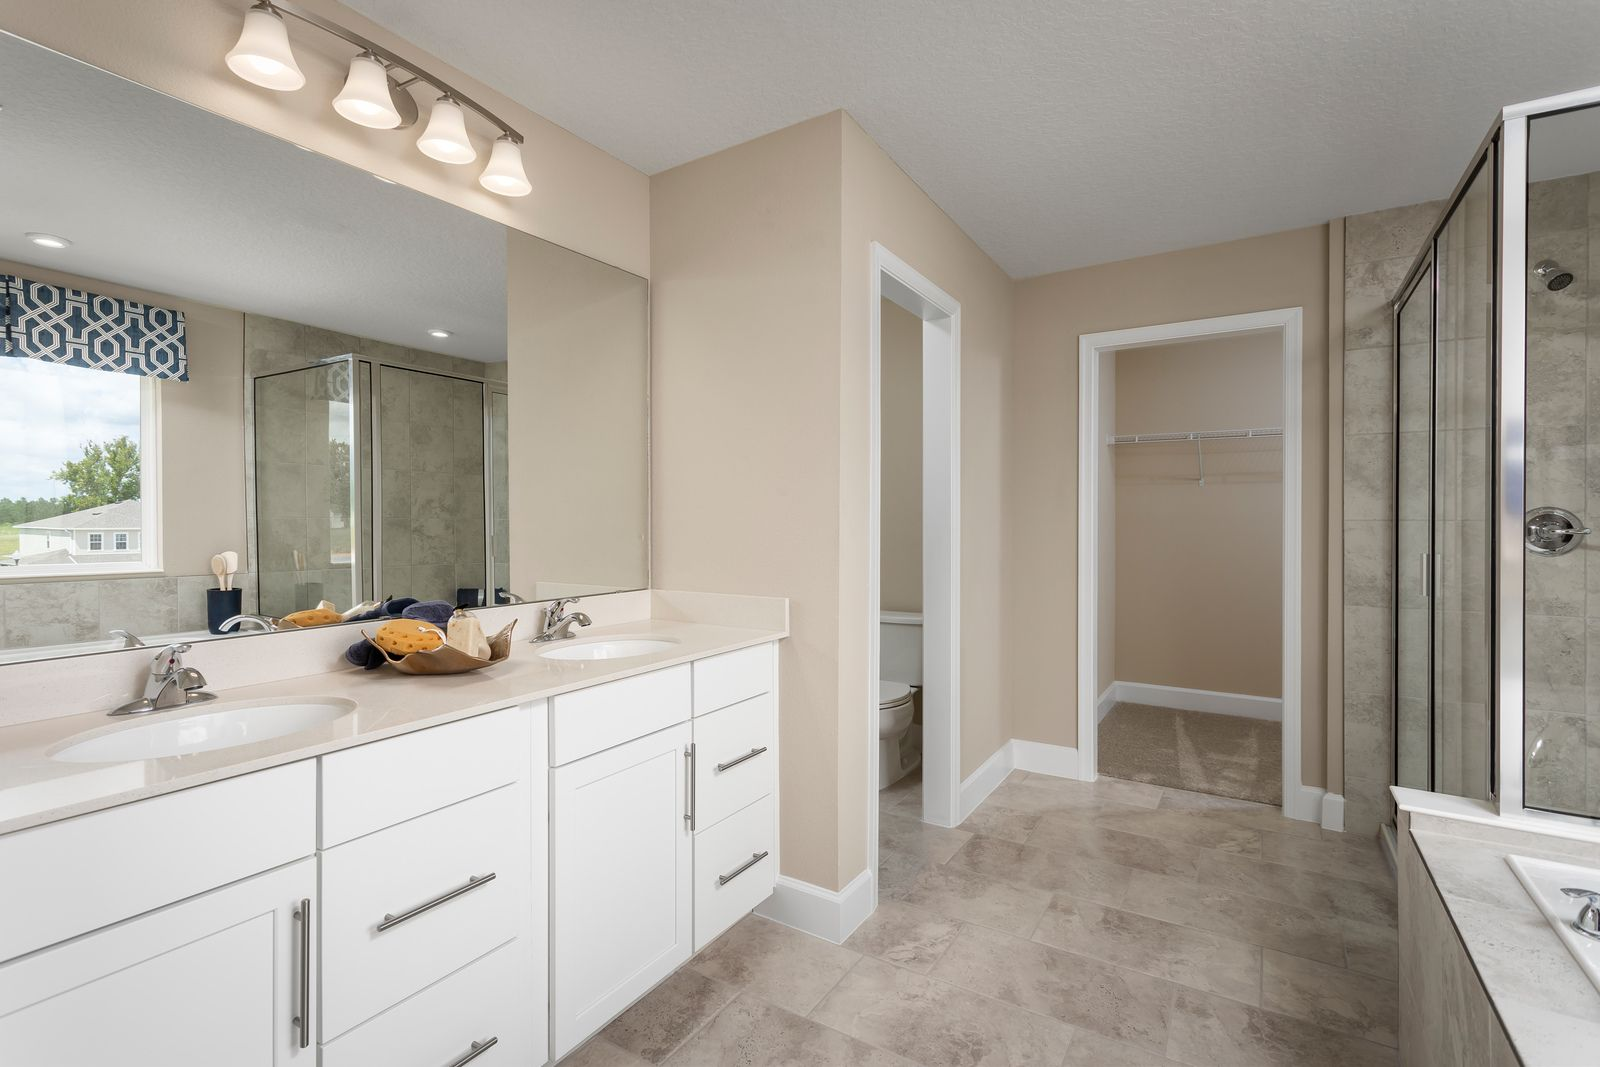 Bathroom featured in the Lynn Haven By Ryan Homes in Tampa-St. Petersburg, FL